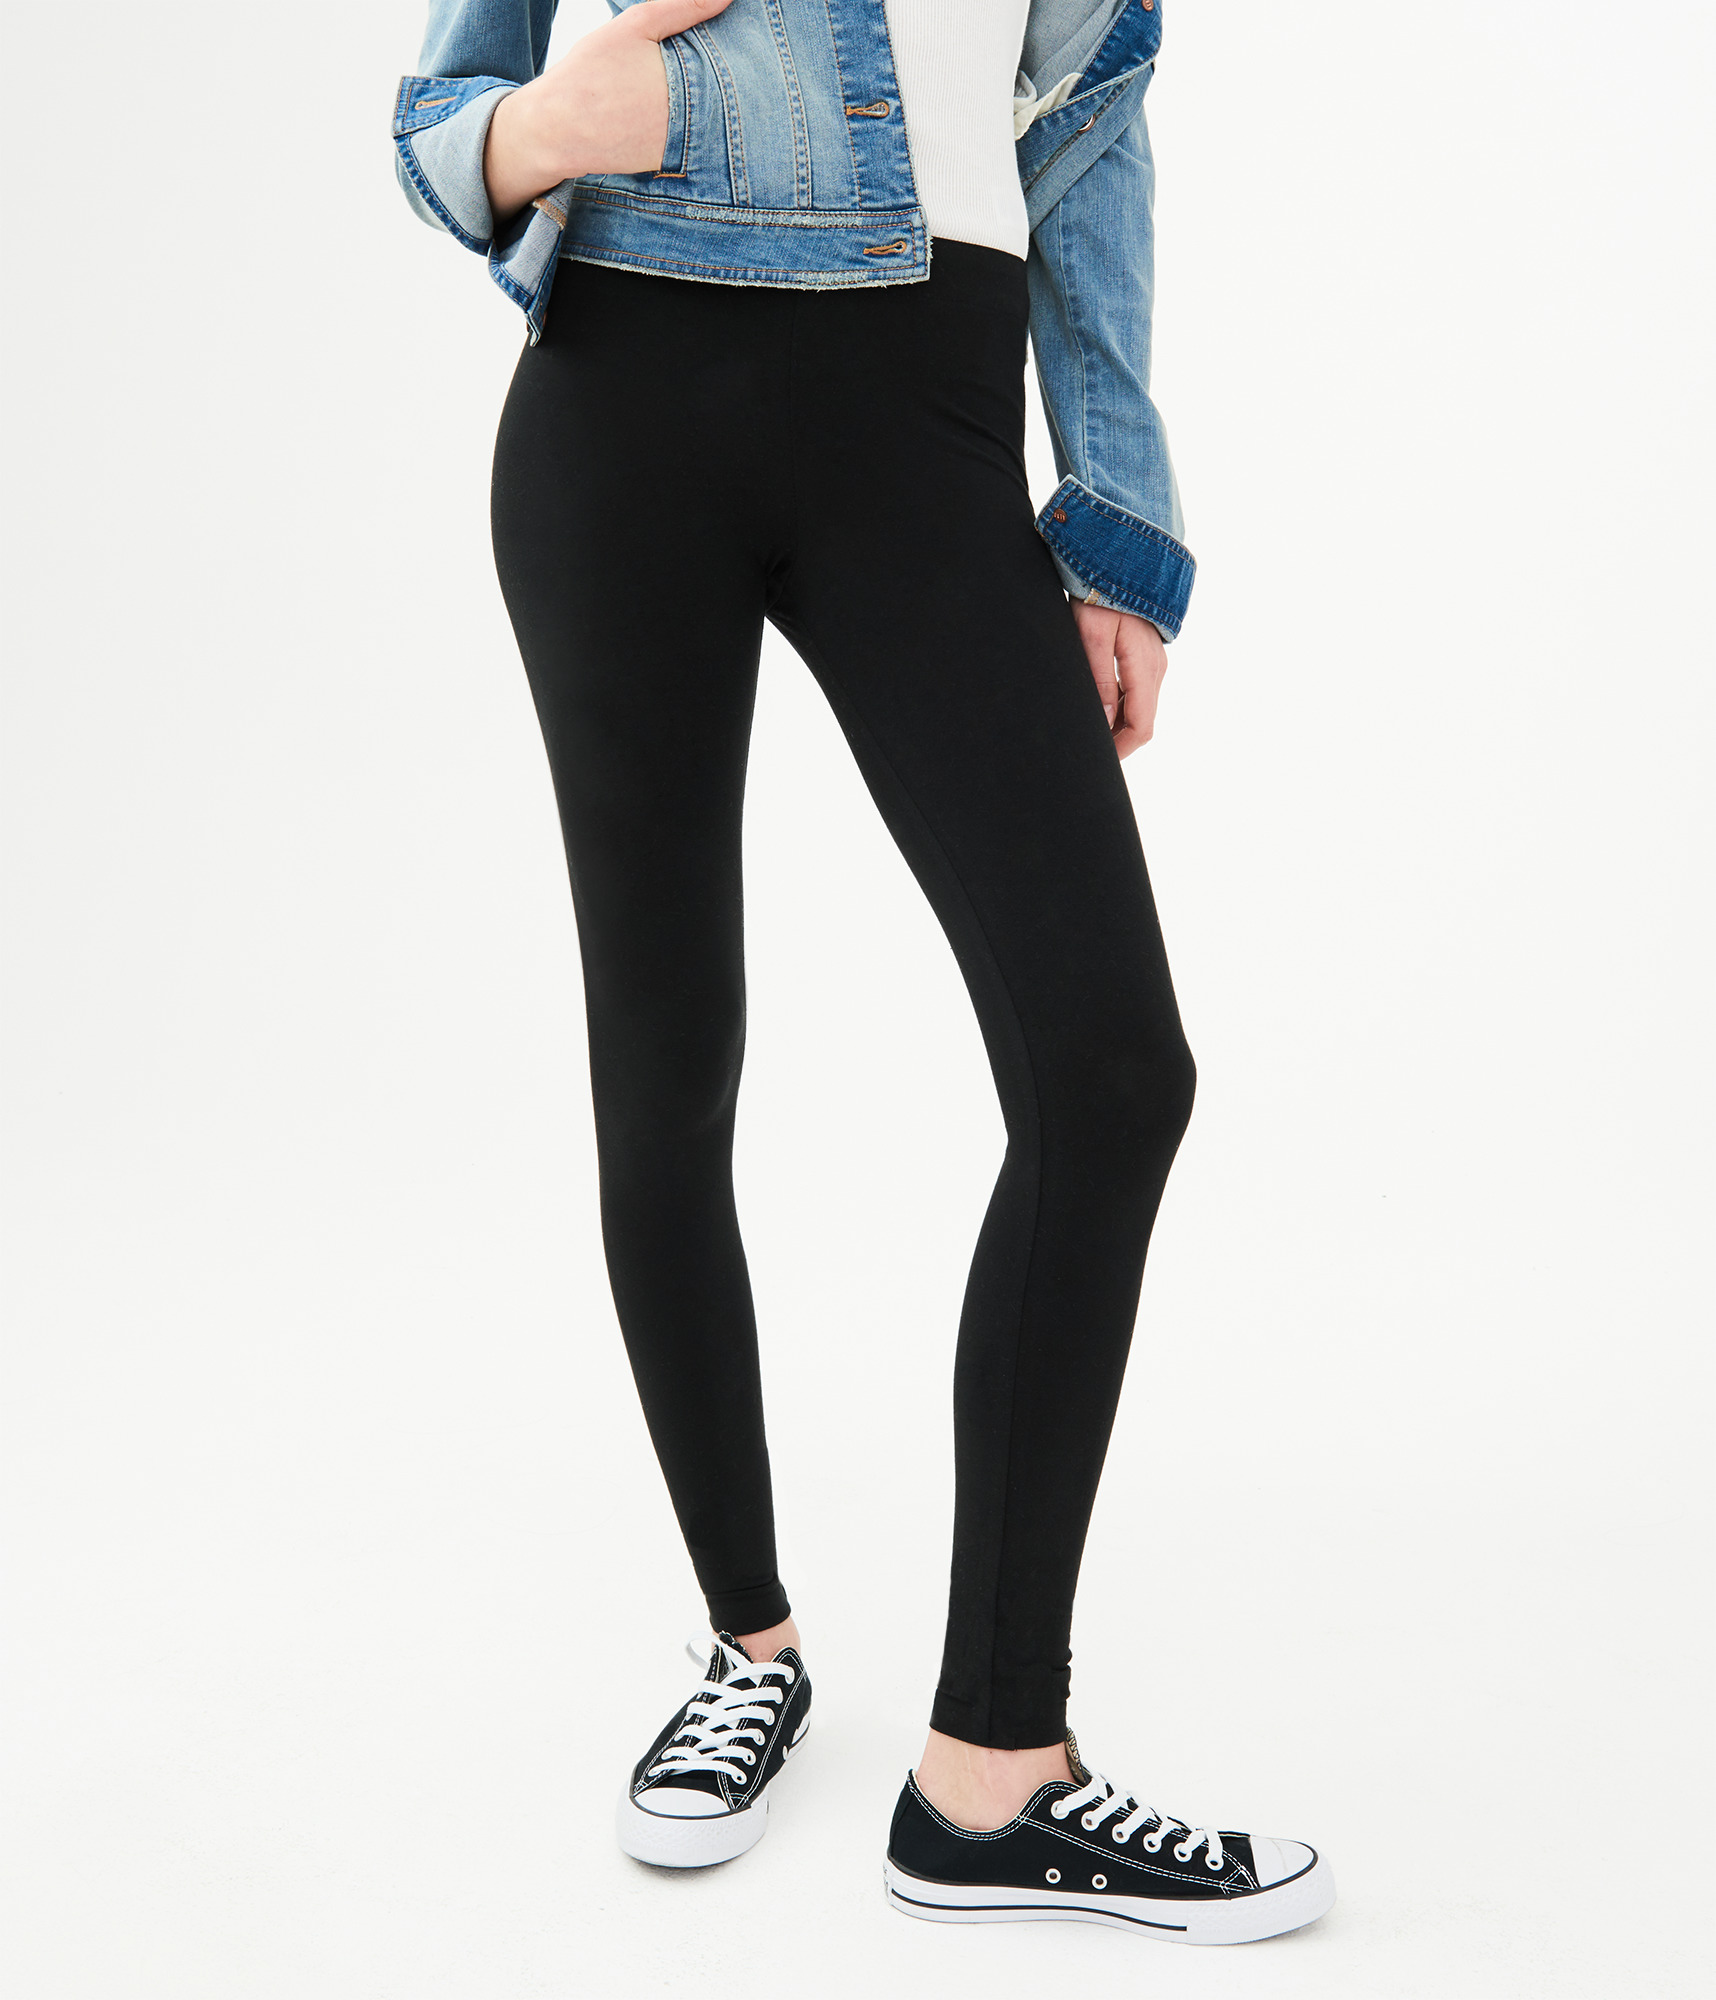 feae5295ba147 Classic High-Waisted Leggings